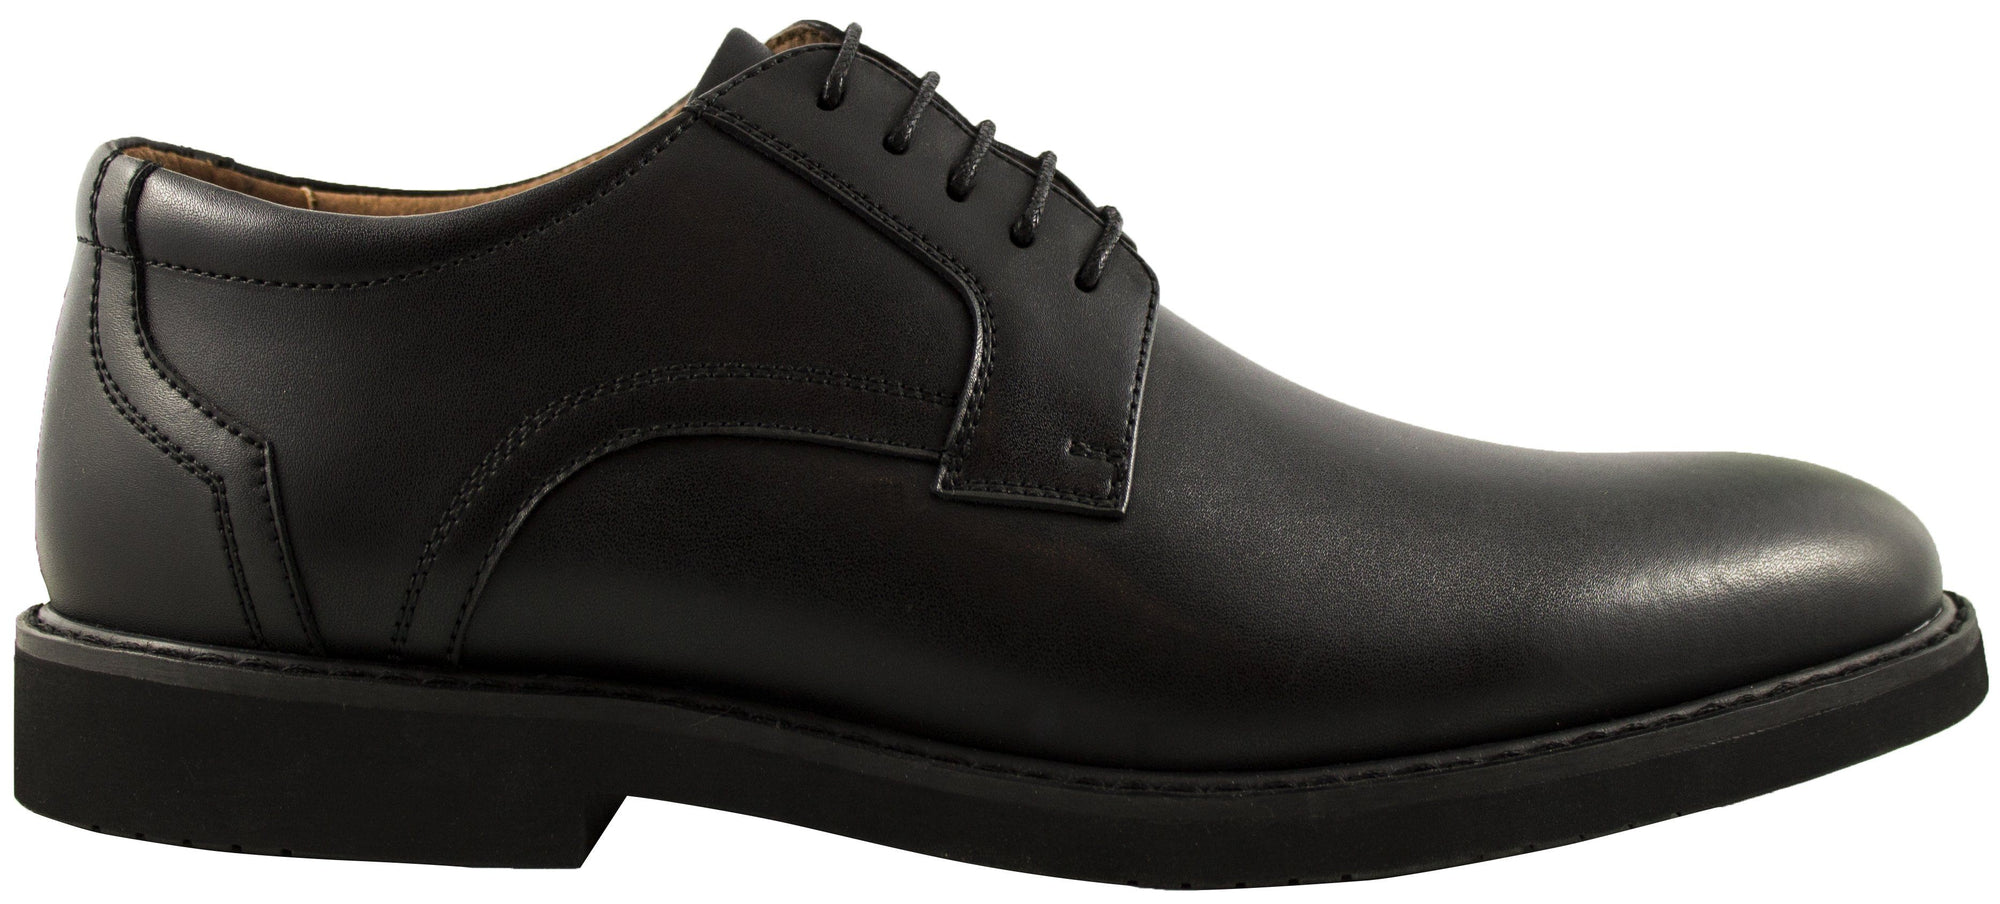 Geoffrey Beene-Wall St-Leather Toe Cap Dress Shoe-Black Footwear Geoffrey Beene